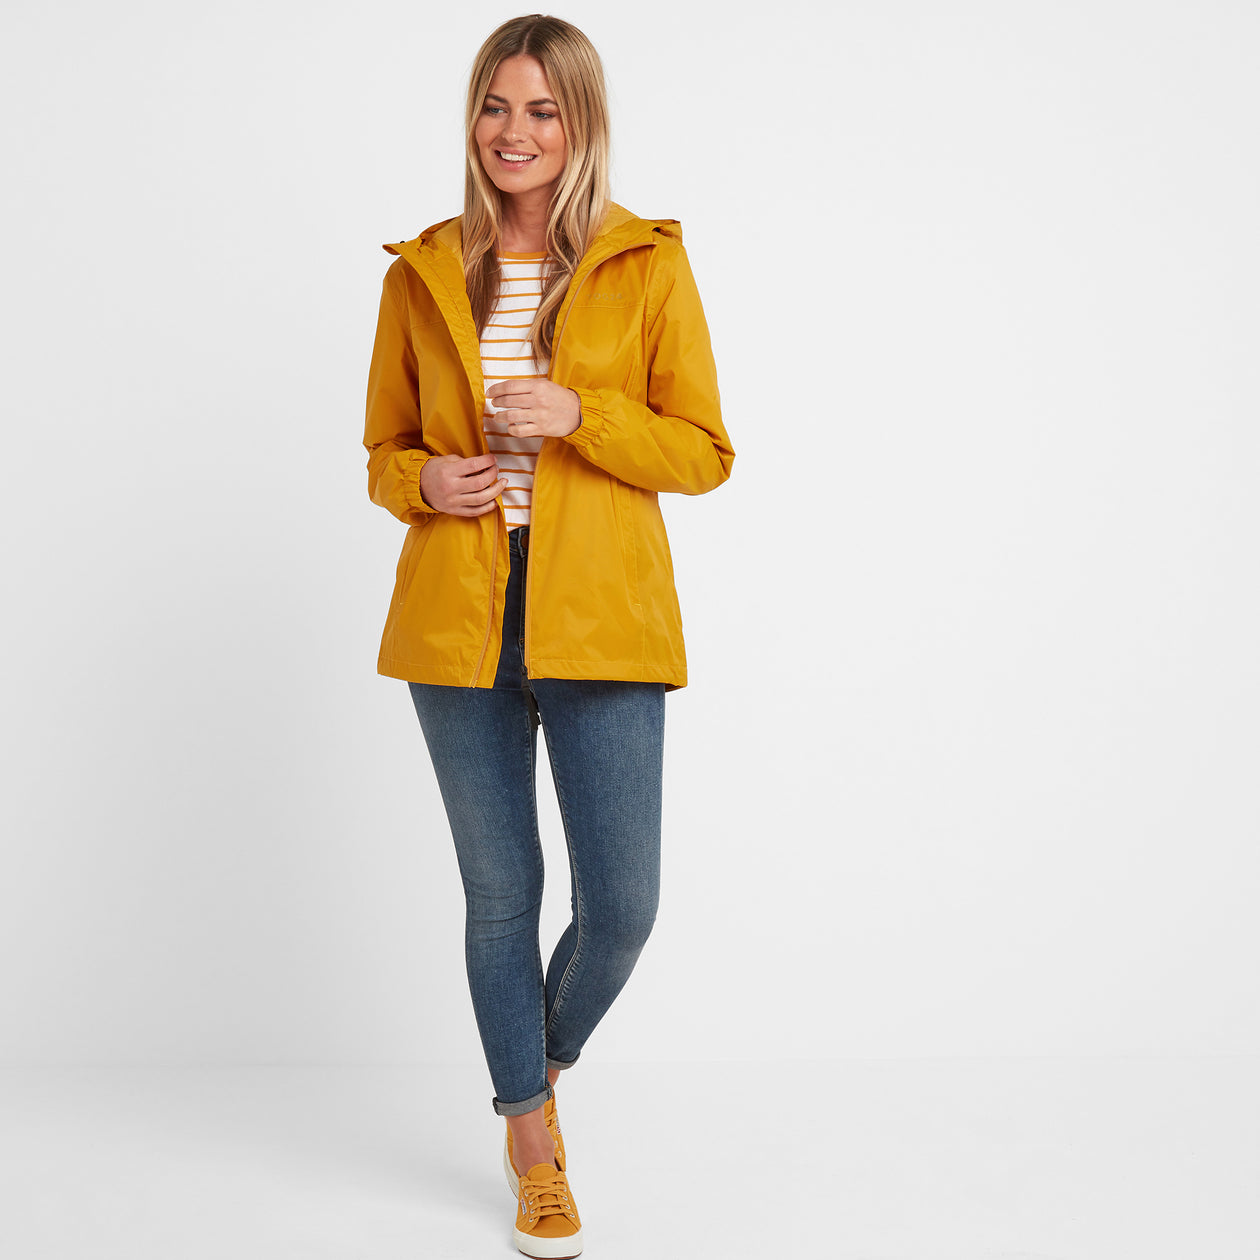 Craven Womens Waterproof Packaway Jacket - Golden Yellow image 4